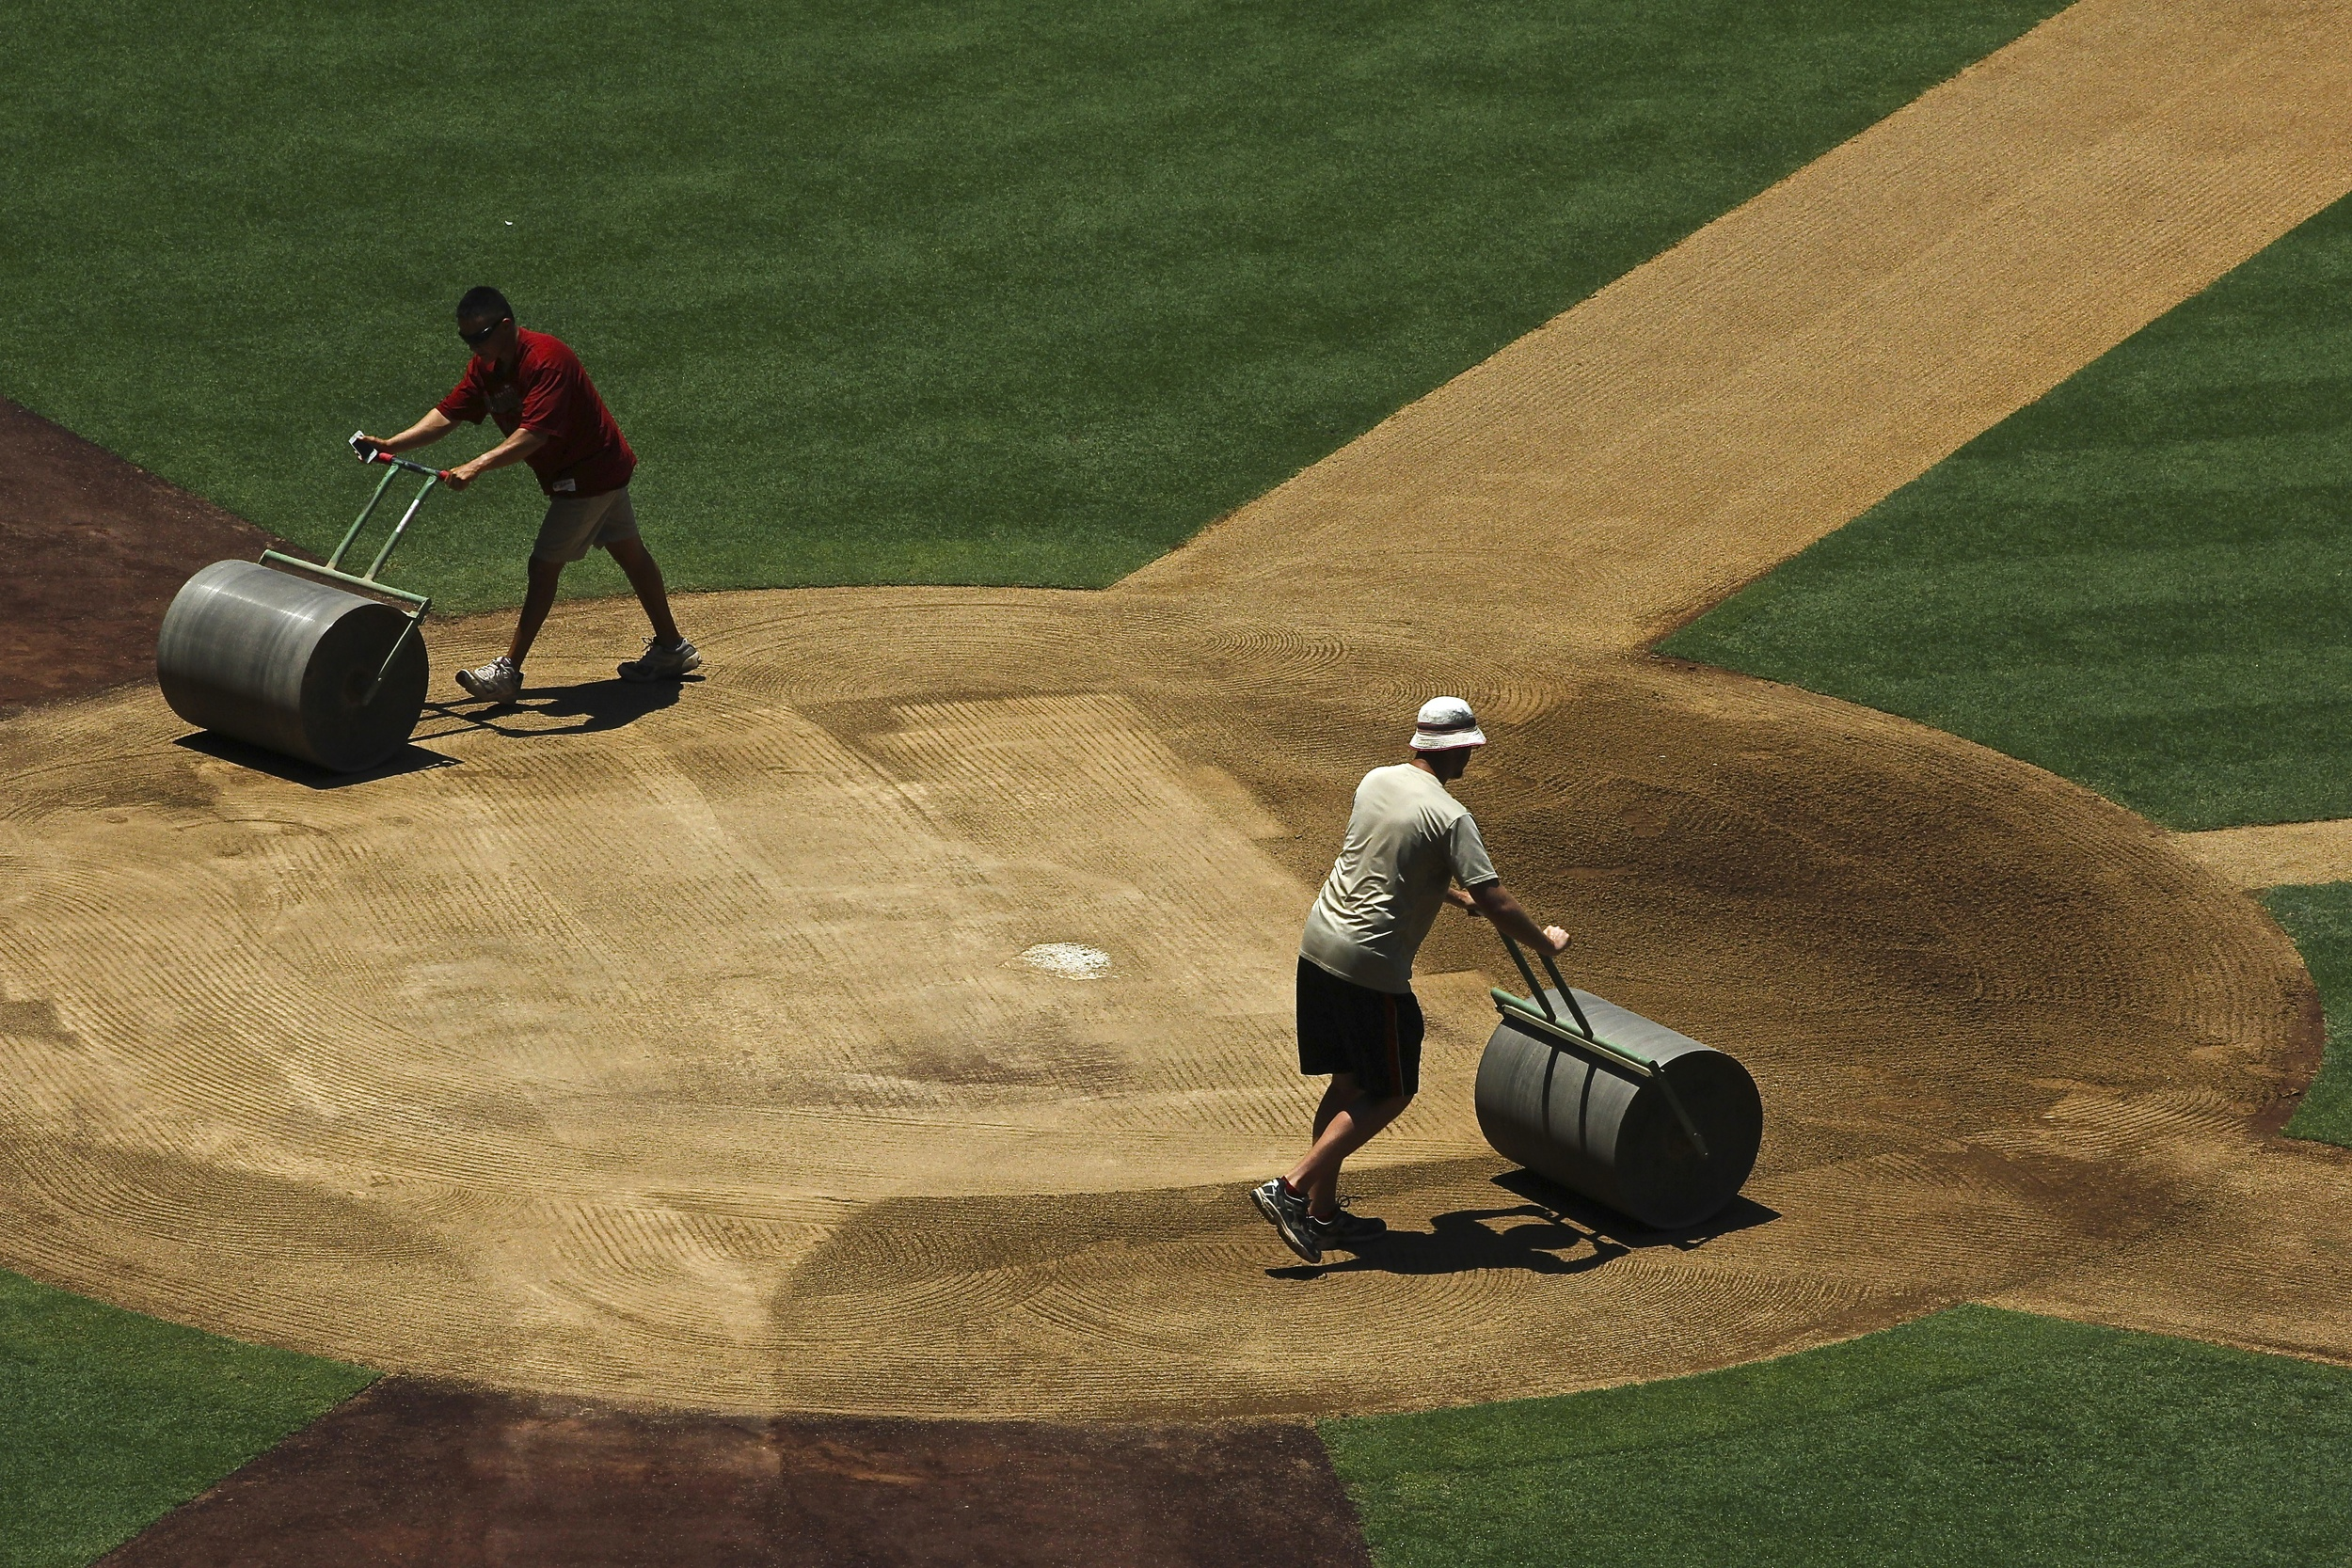 Steamrolling the batters box